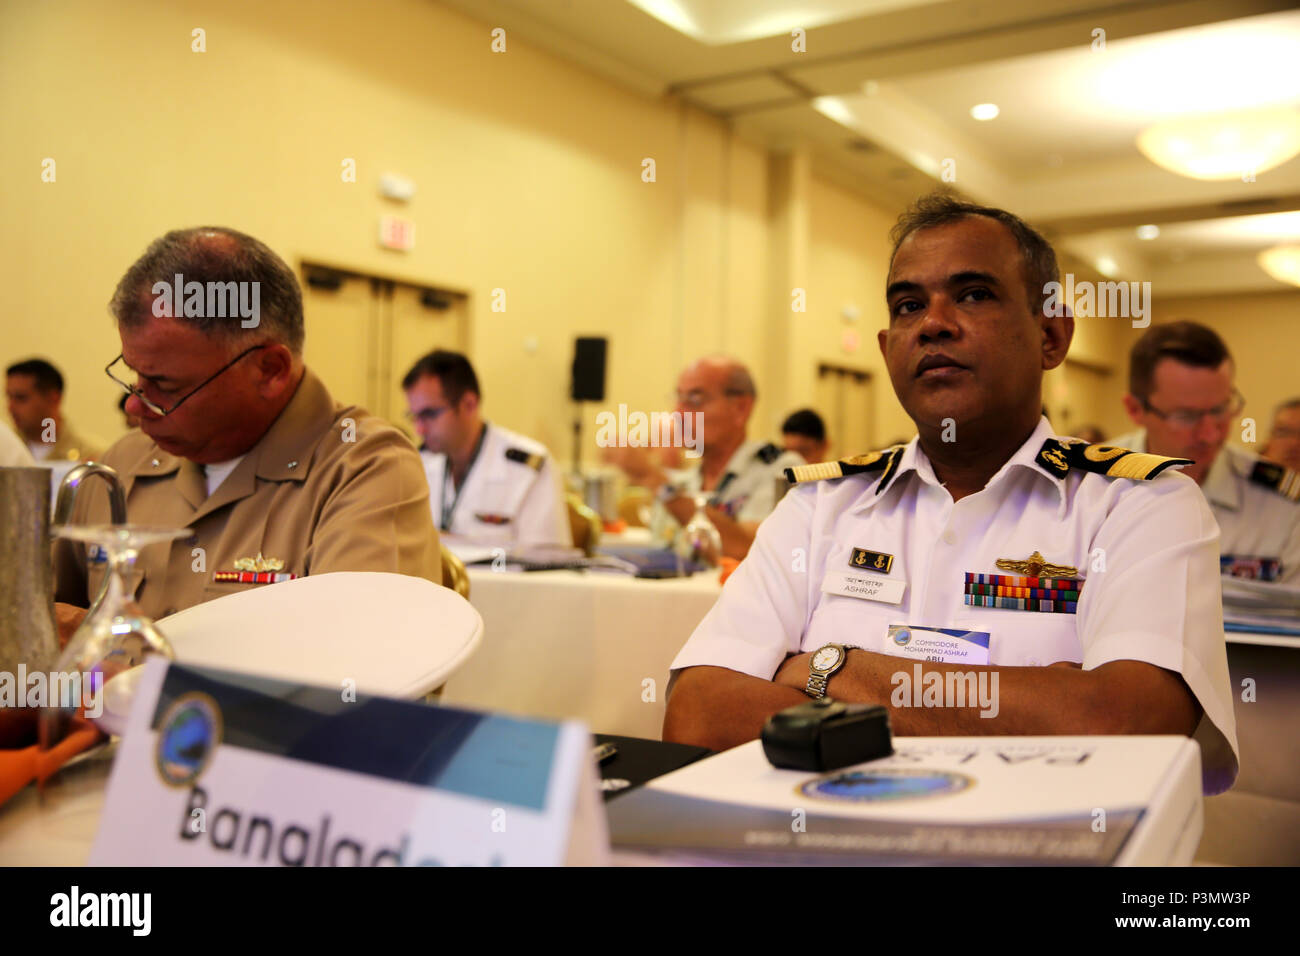 SAN DIEGO Calif. - Commodore Mohammed Abu Ashraf, the Bangladesh Naval aviation commodore, takes part in the Pacific Command Amphibious Leaders Symposium 2016 conference in San Diego, Calif., July 11, 2016. PALS provides senior military leaders with a platform to interact with one another while discussing various ways to conduct military operations. Academic discussions are held to inform one another of the many different capabilities each nation has to offer to support potential missions and objectives. (U.S. Marine Corps photo by Cpl. Demetrius Morgan/ RELEASED) Stock Photo